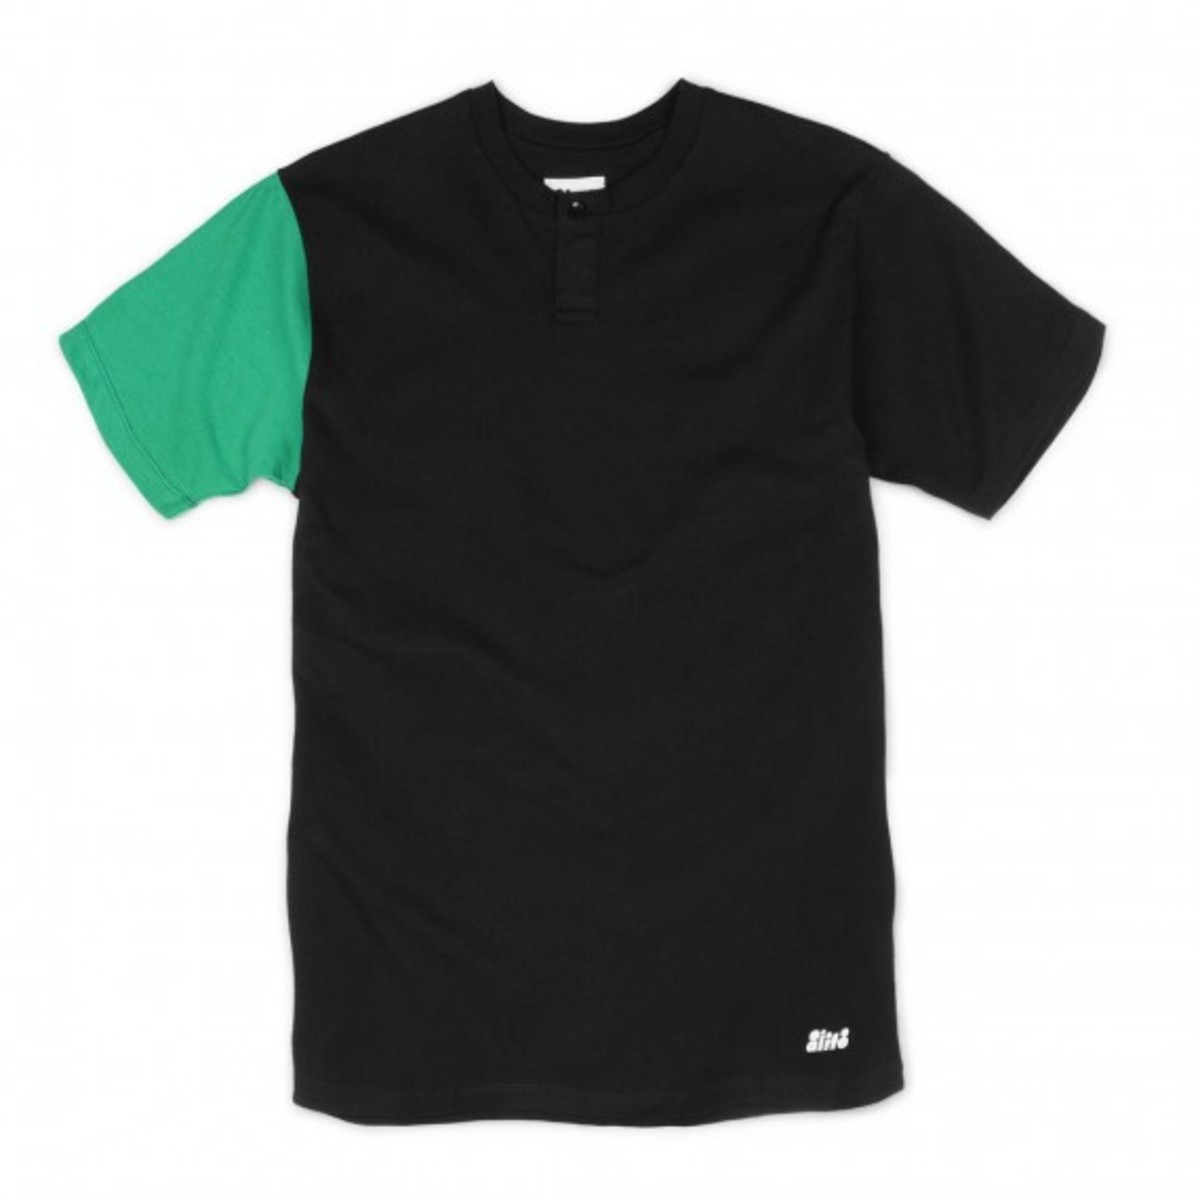 alife-tshirts-accessories-fall-2011-43